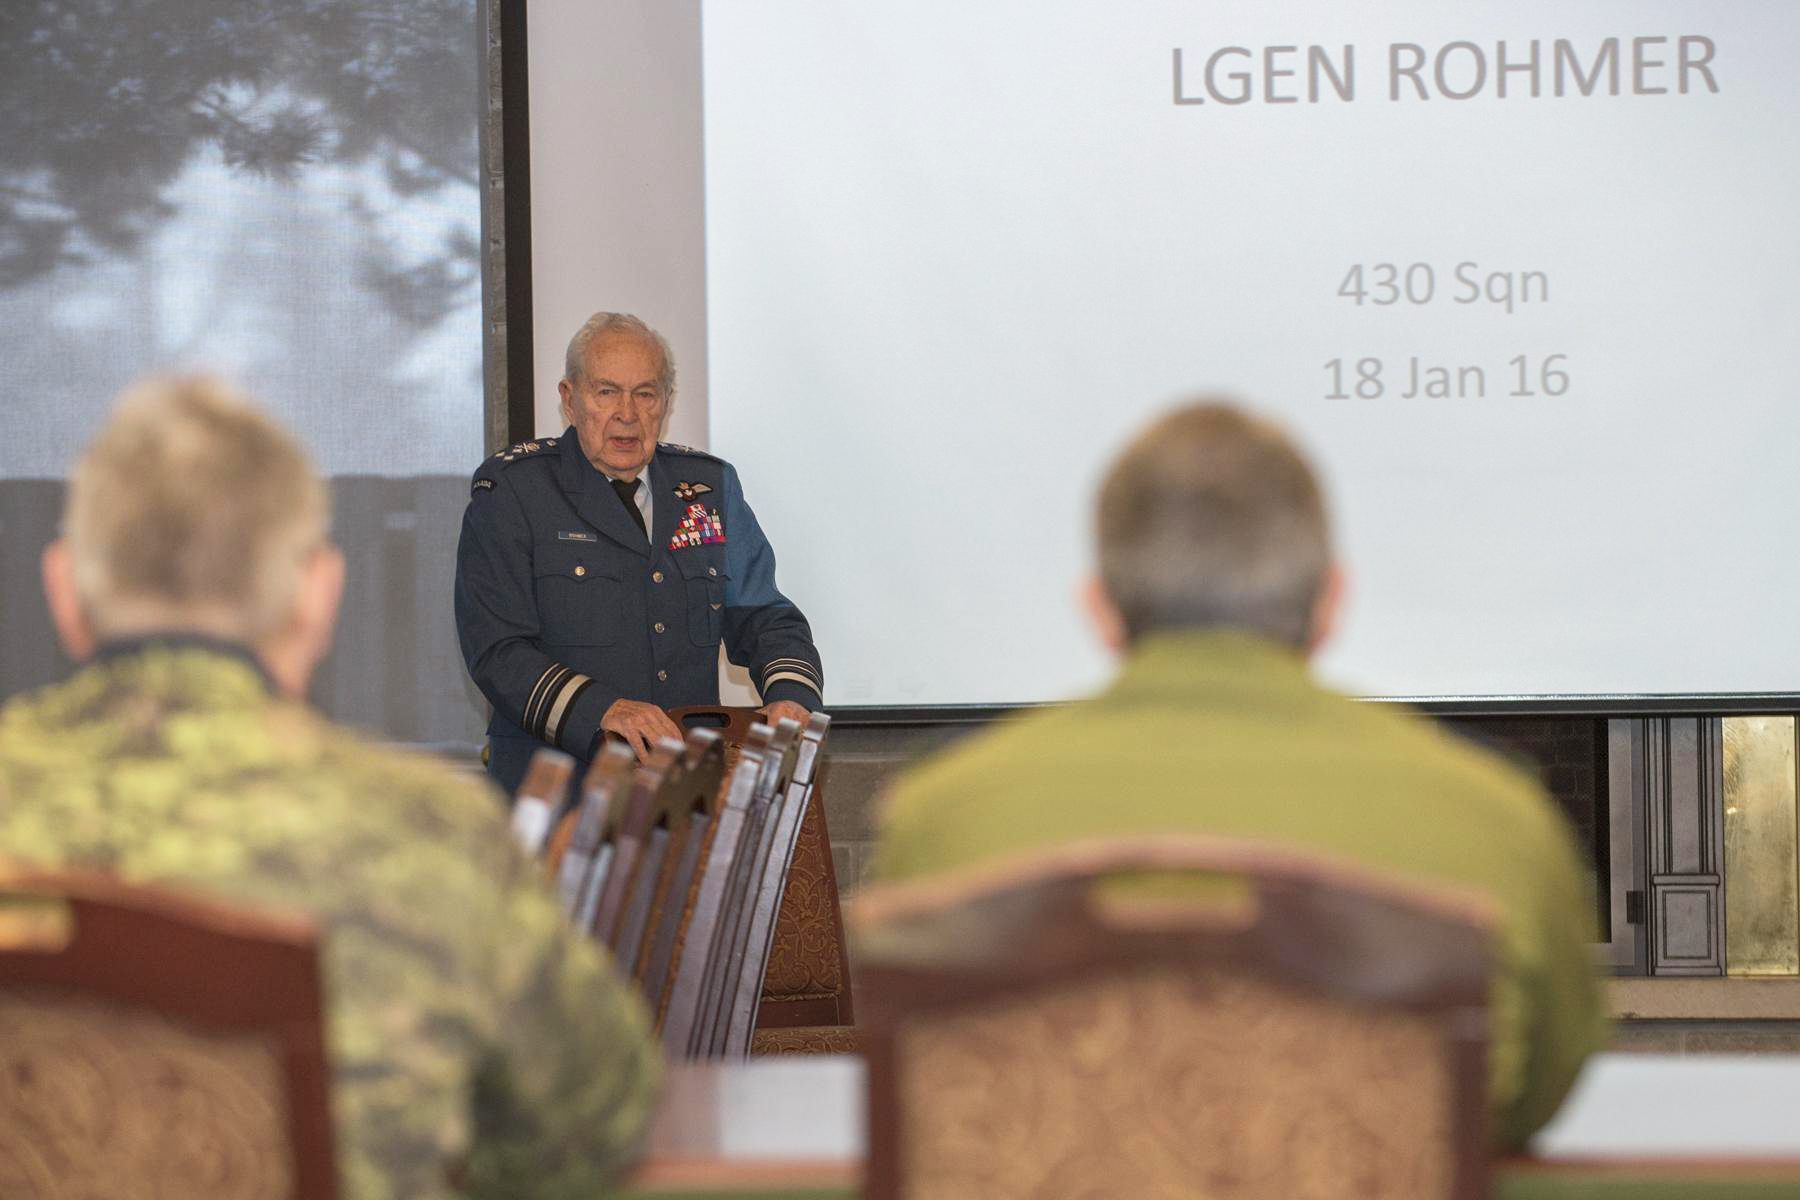 Squadron CWO Chief Warrant Officer Michel Trudel (left foreground) and commanding officer Lieutenant-Colonel Carol Potvin attend an historical briefing given by Second World War-era squadron member Lieutenant-General Richard Rohmer to members of the squadron.